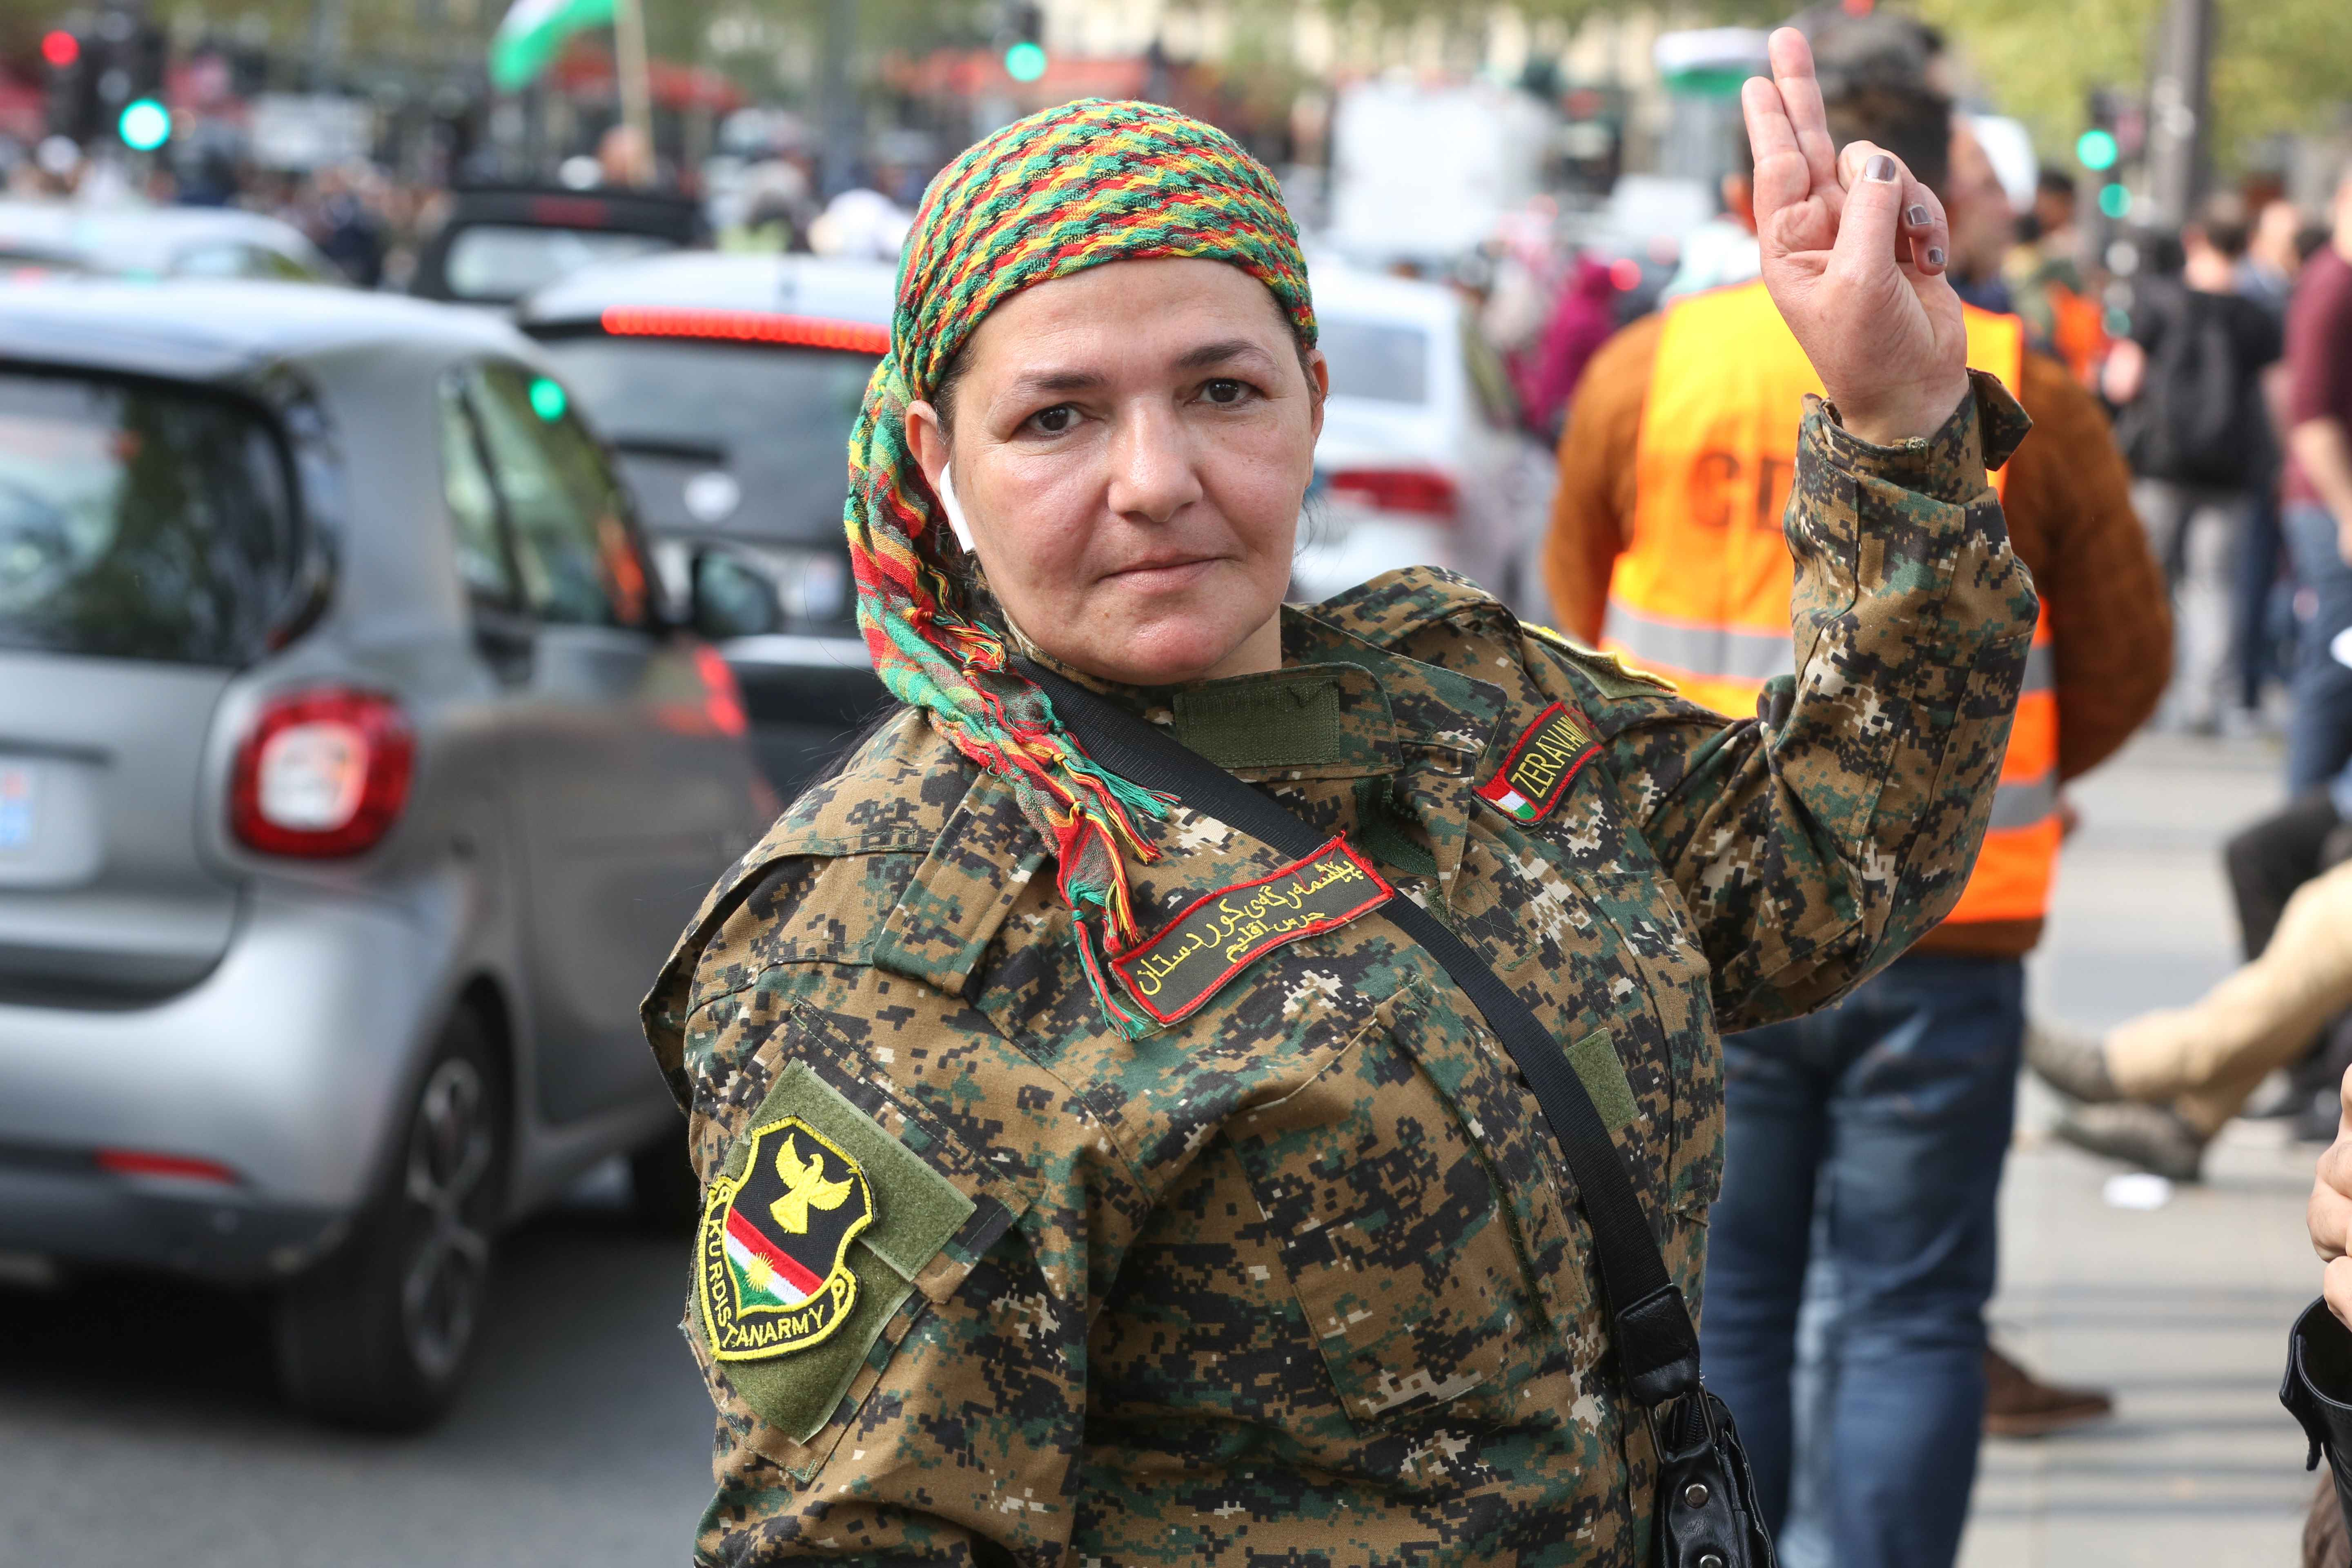 A woman is wearing a battle dress with the Kurdistan Army insignia during a demonstration at the place de la Republique in Paris, on October 12, 2019, in support of the Kurds and against the Turkish offensive in Syria. On October 9, 2019, the Turkish milit